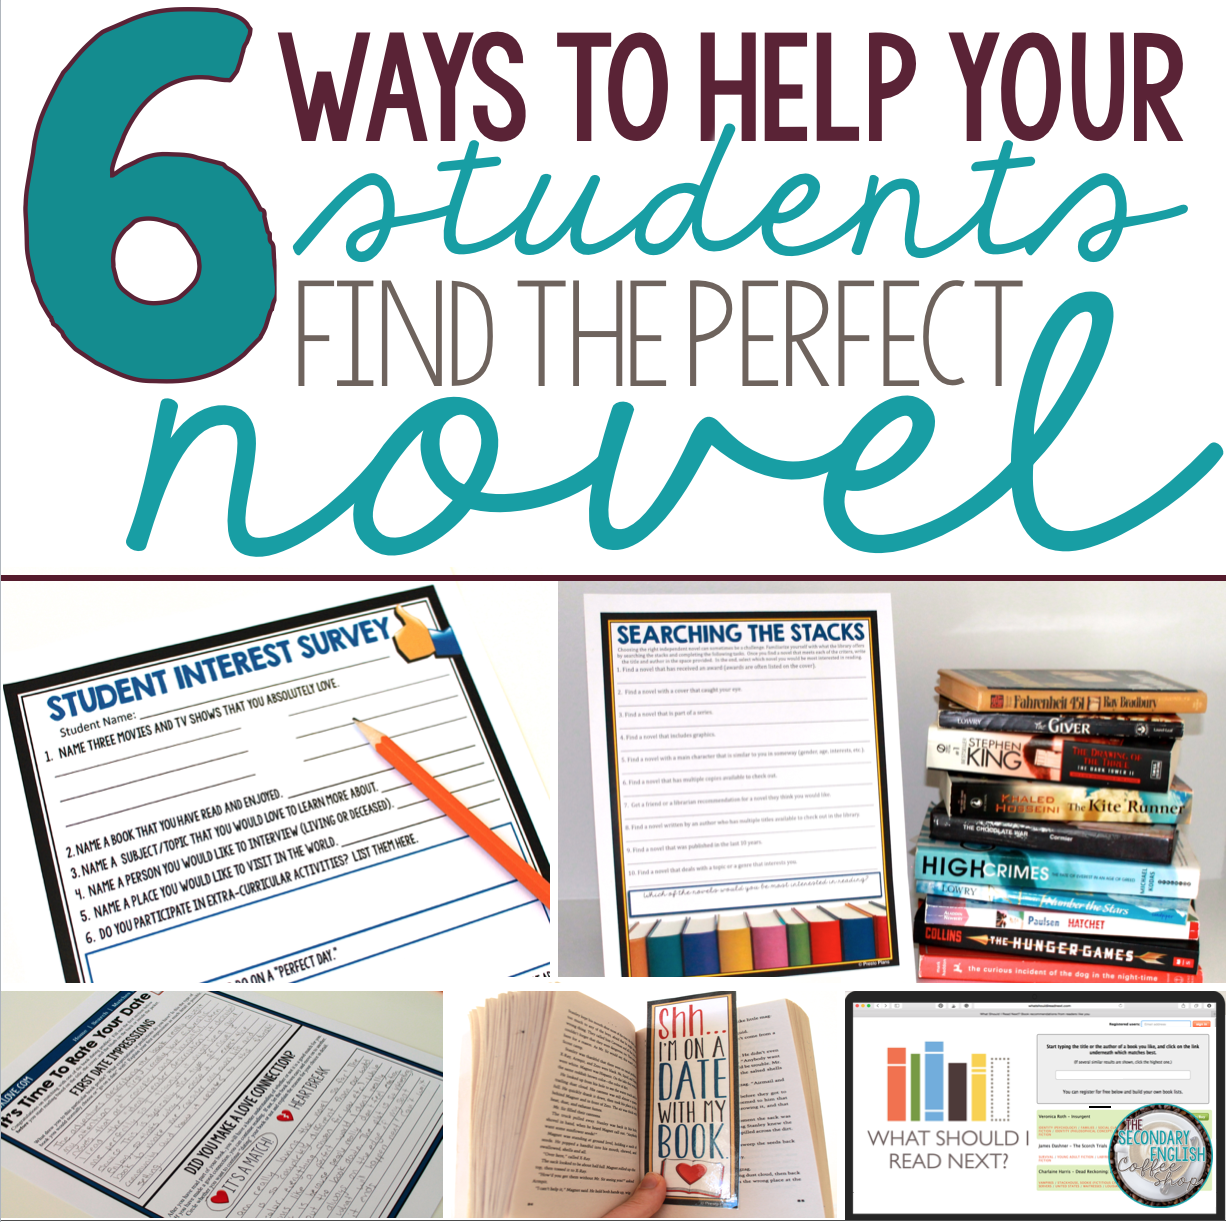 6 Ways To Help Your Students Find The Perfect Novel - The